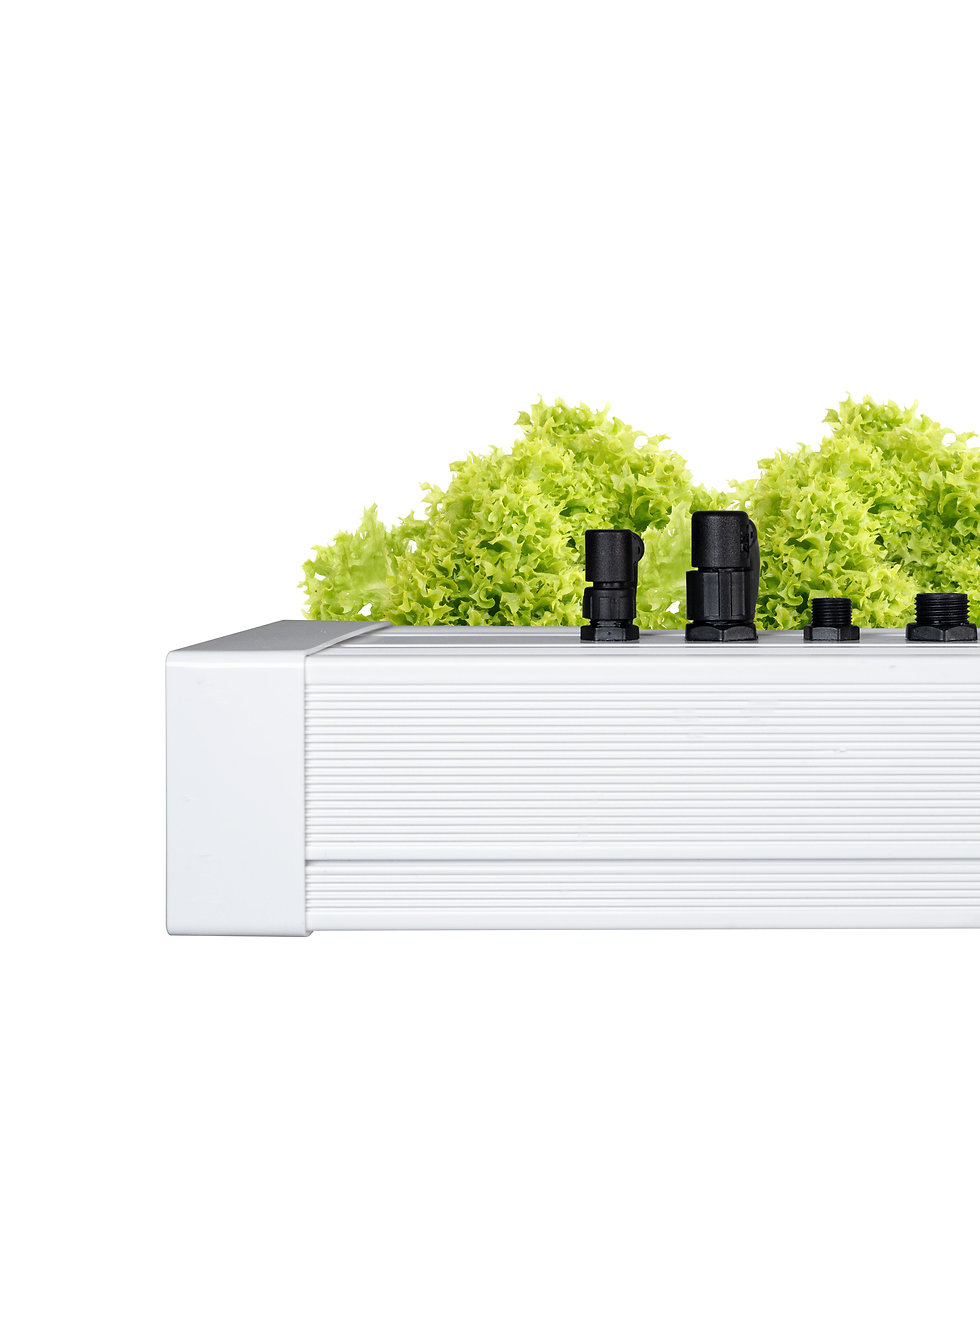 Grow3 grow light fixture with lettuce behind it